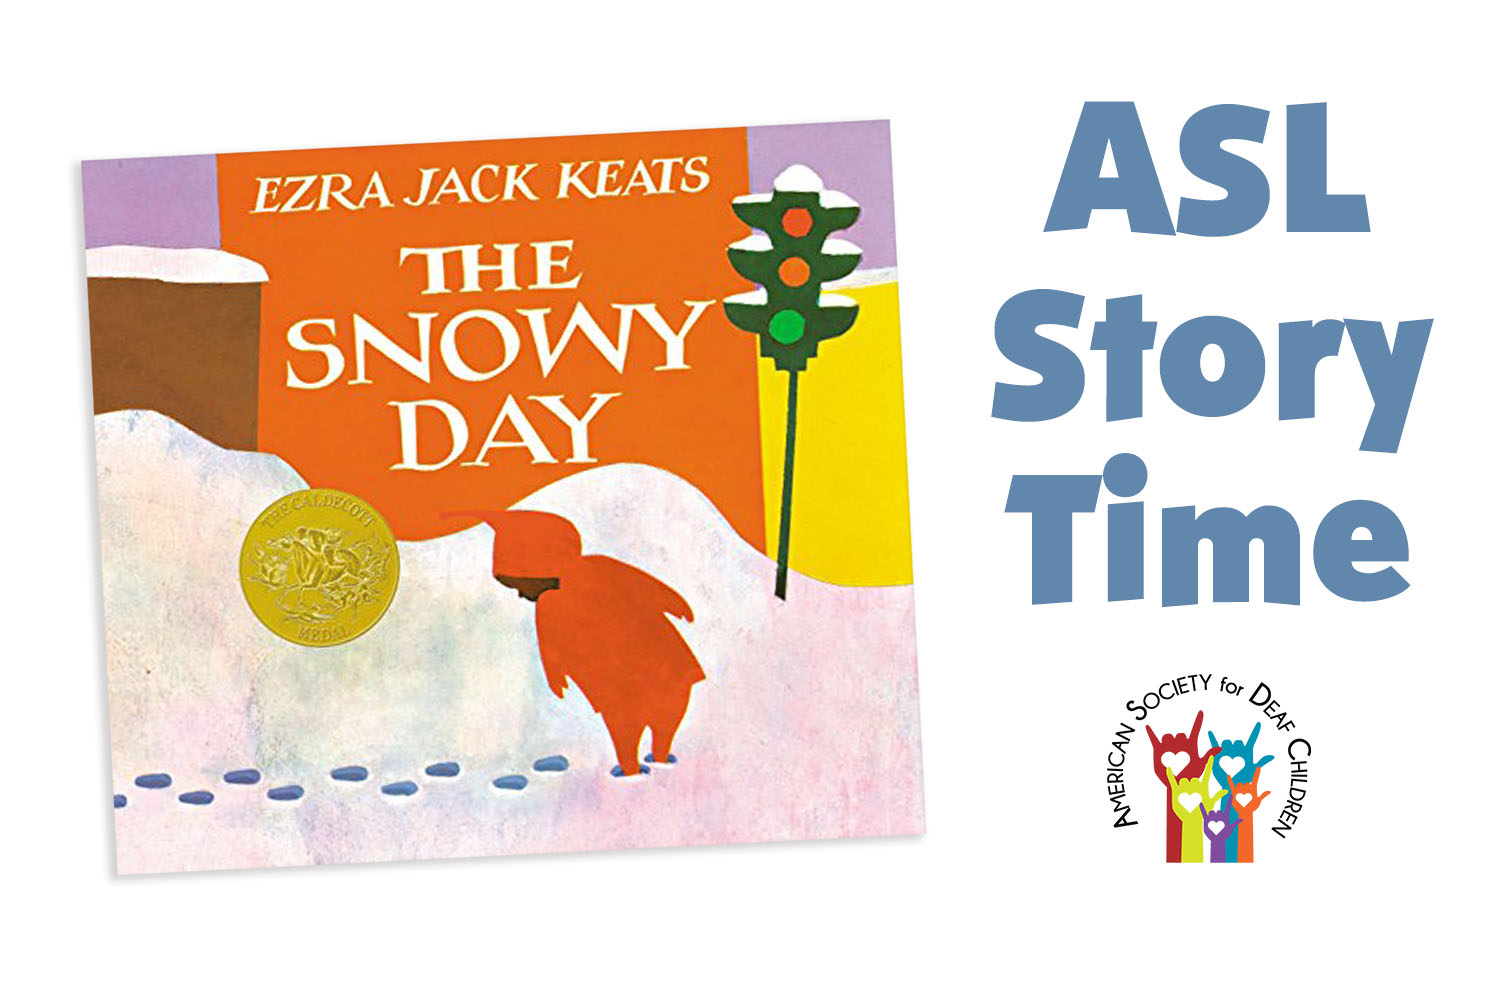 image shows cover of the book the Snowy Day with an child looking at their footsteps in the snow